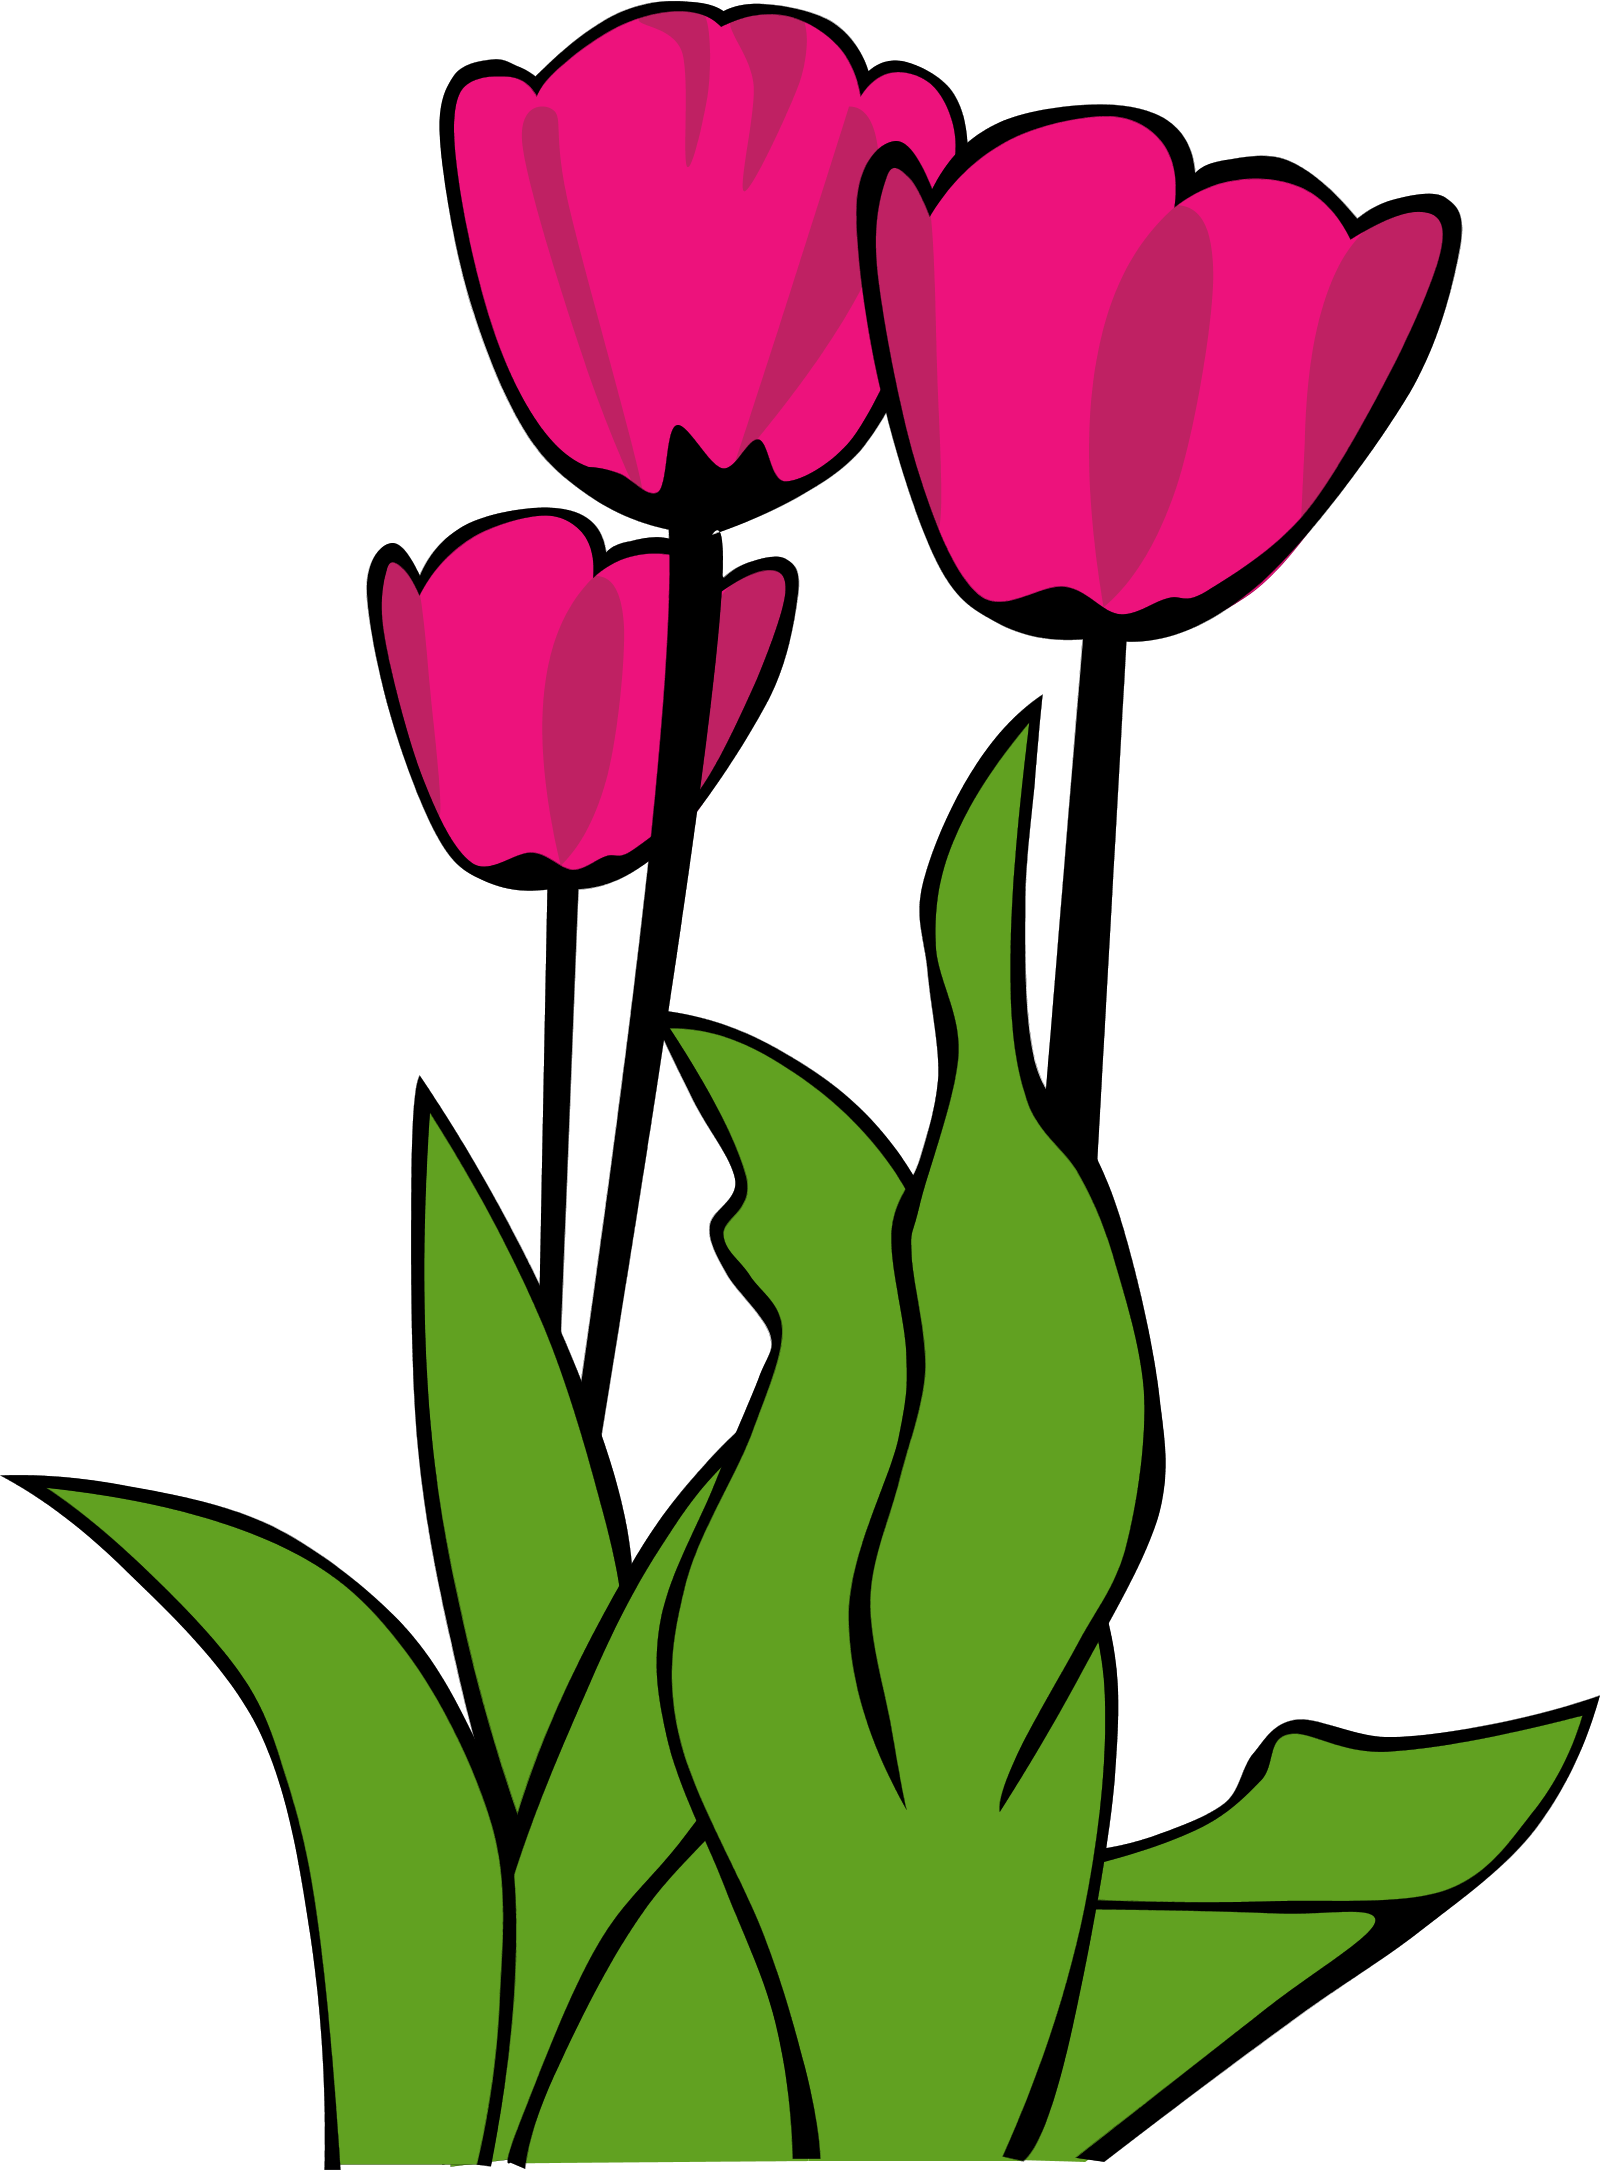 Clipart tulips flowers.